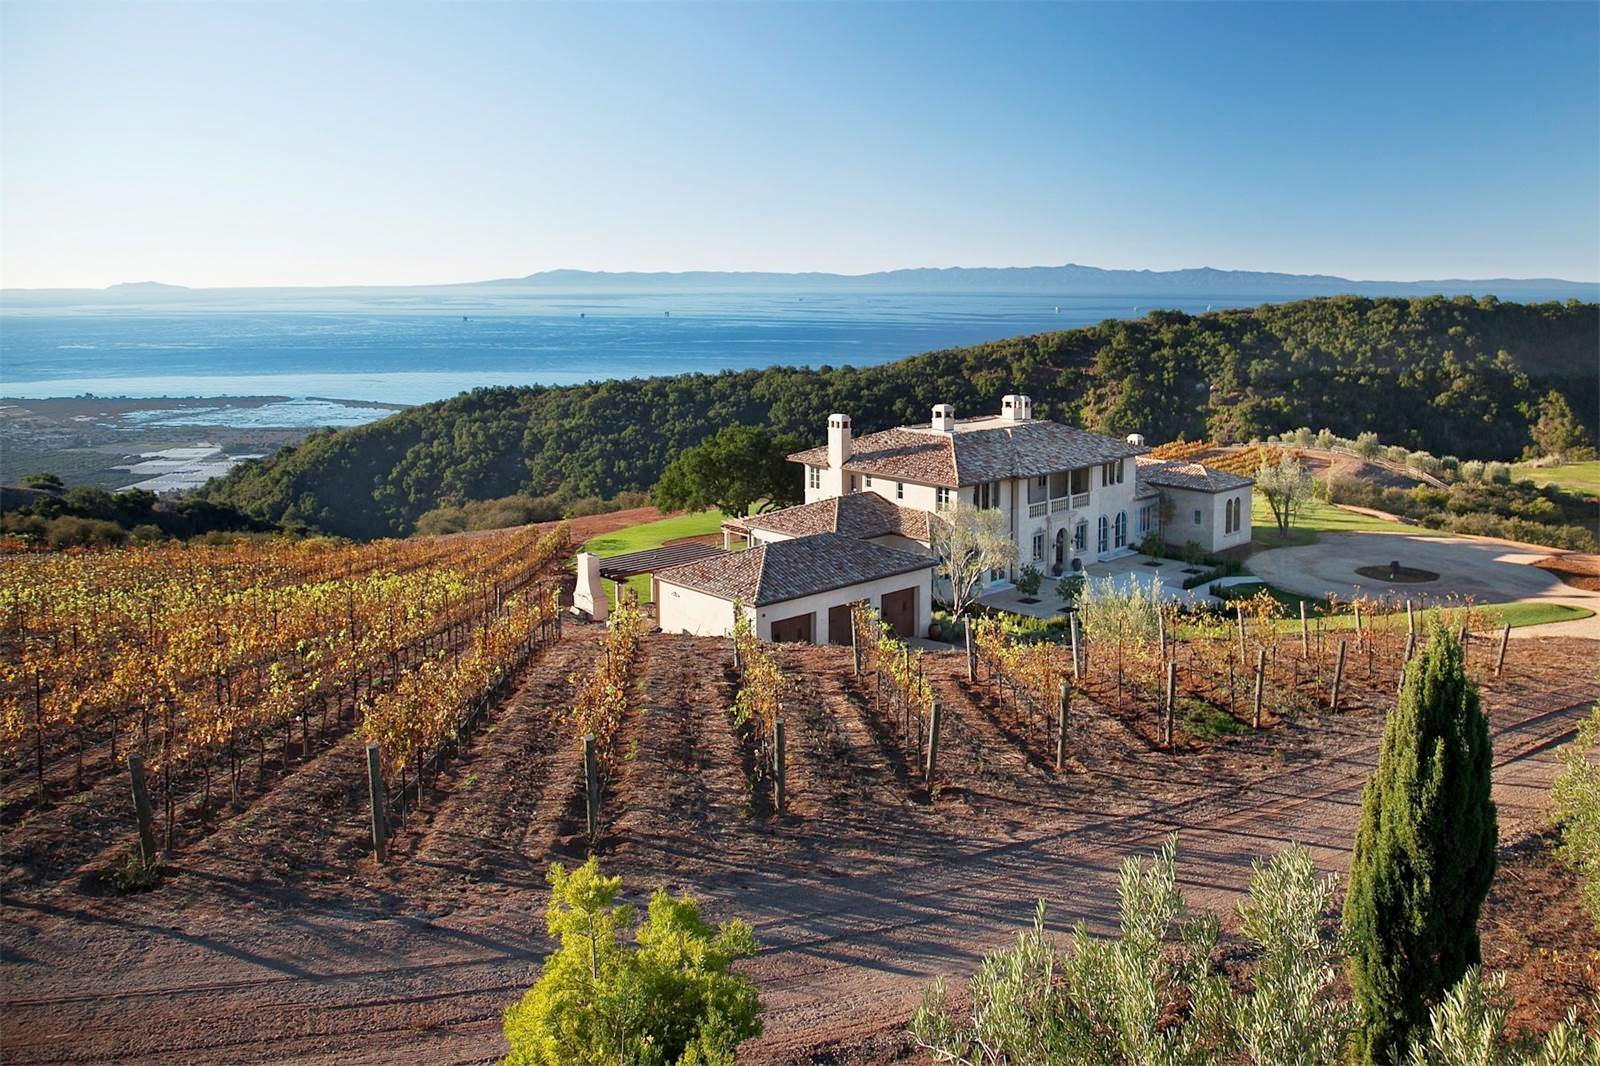 This Villa Comes With Its Own Private Vineyard